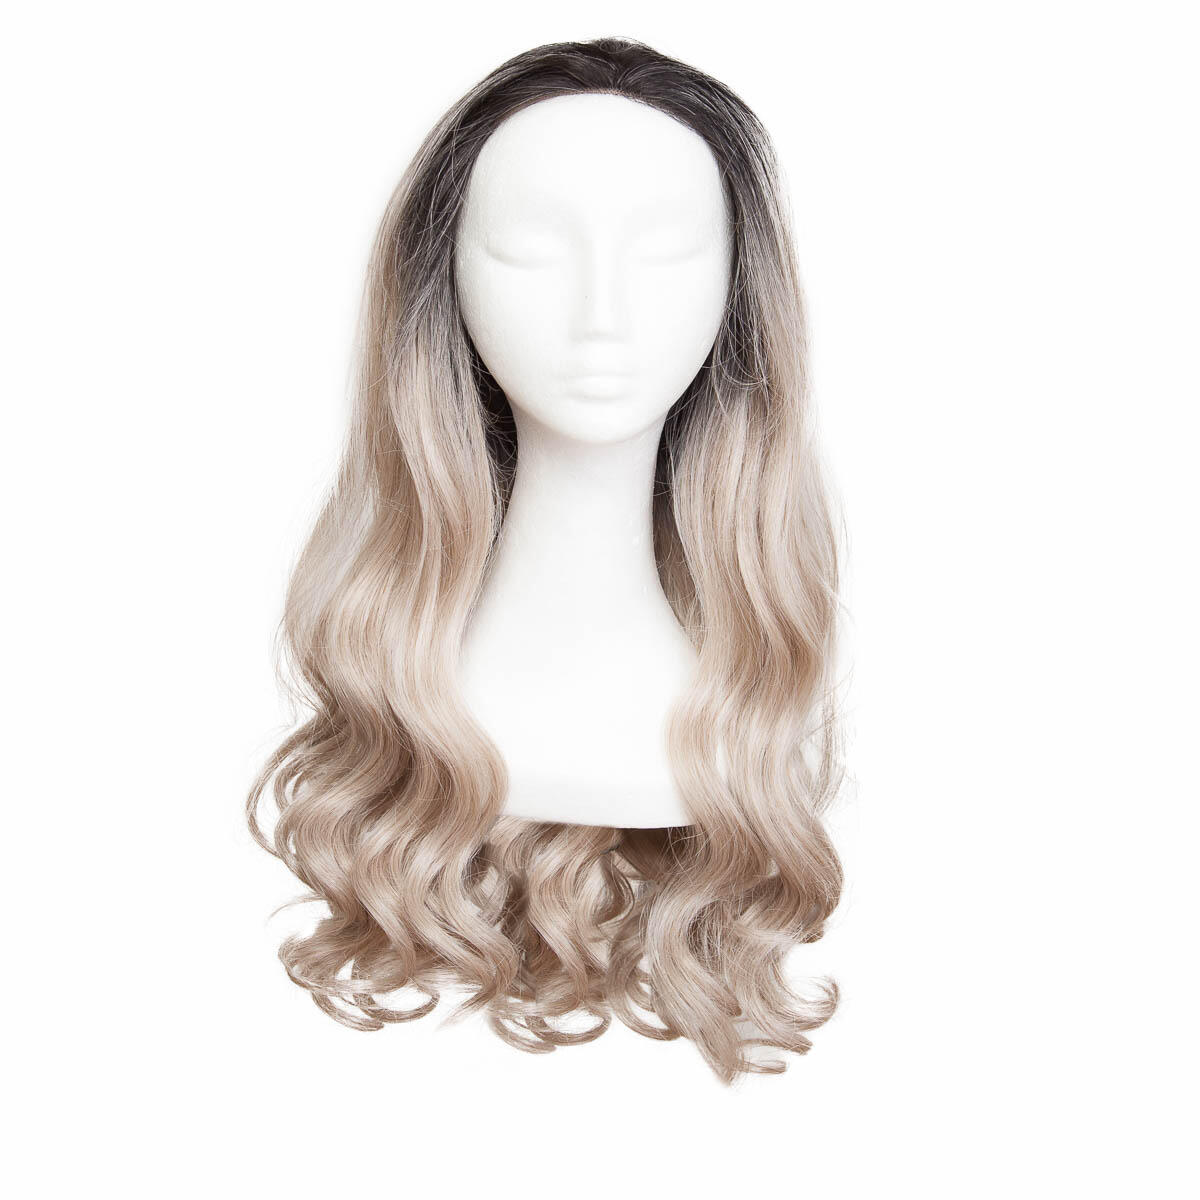 Lace Front Perücke Long Curly O1.2/10.5 Black Brown/Grey 60 cm